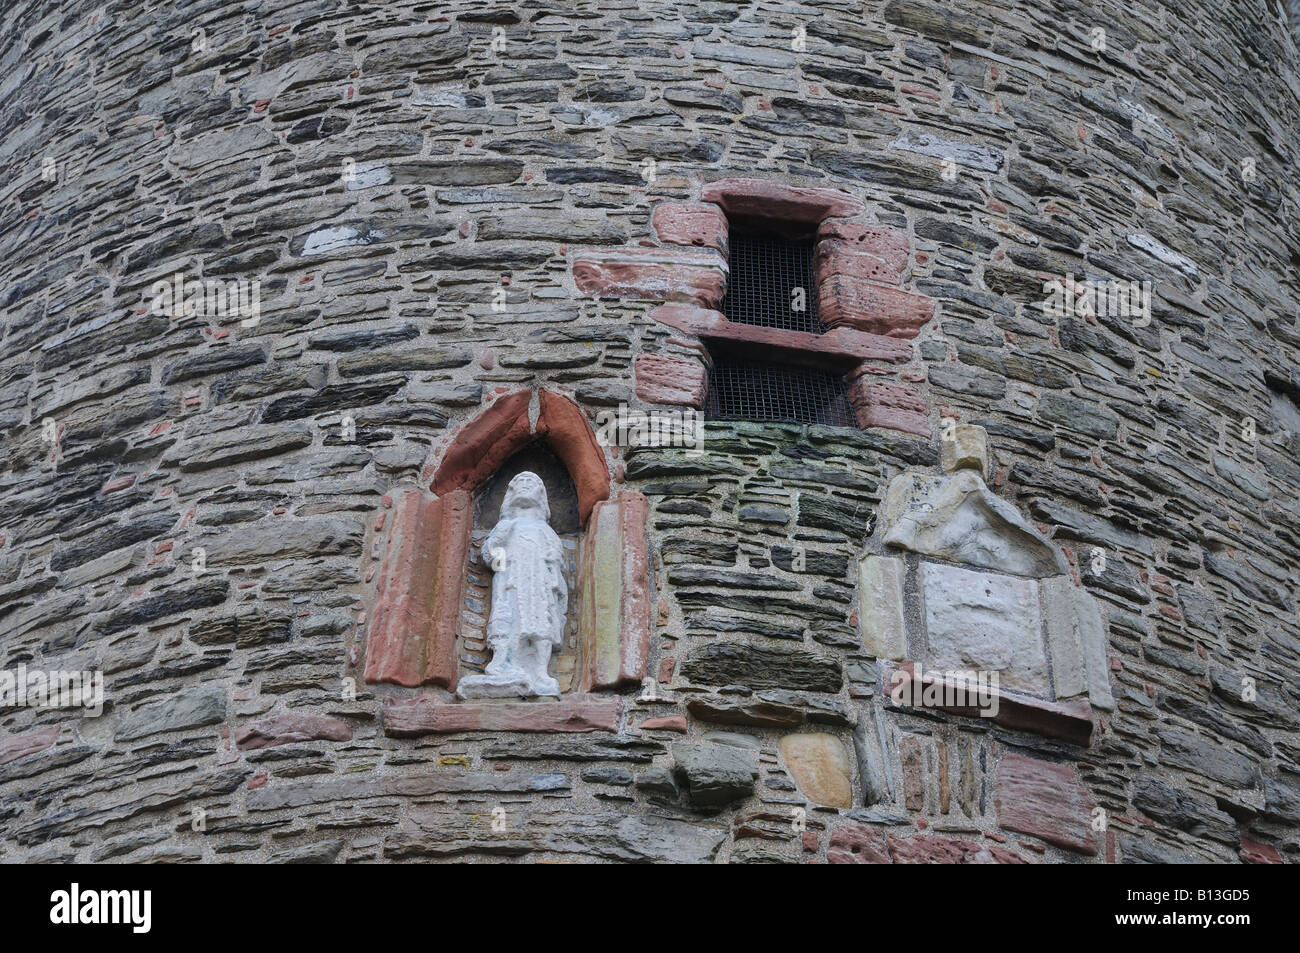 A detail of the Bishop's Palace in Kirkwall. The palace dates from the mid-12th century. - Stock Image